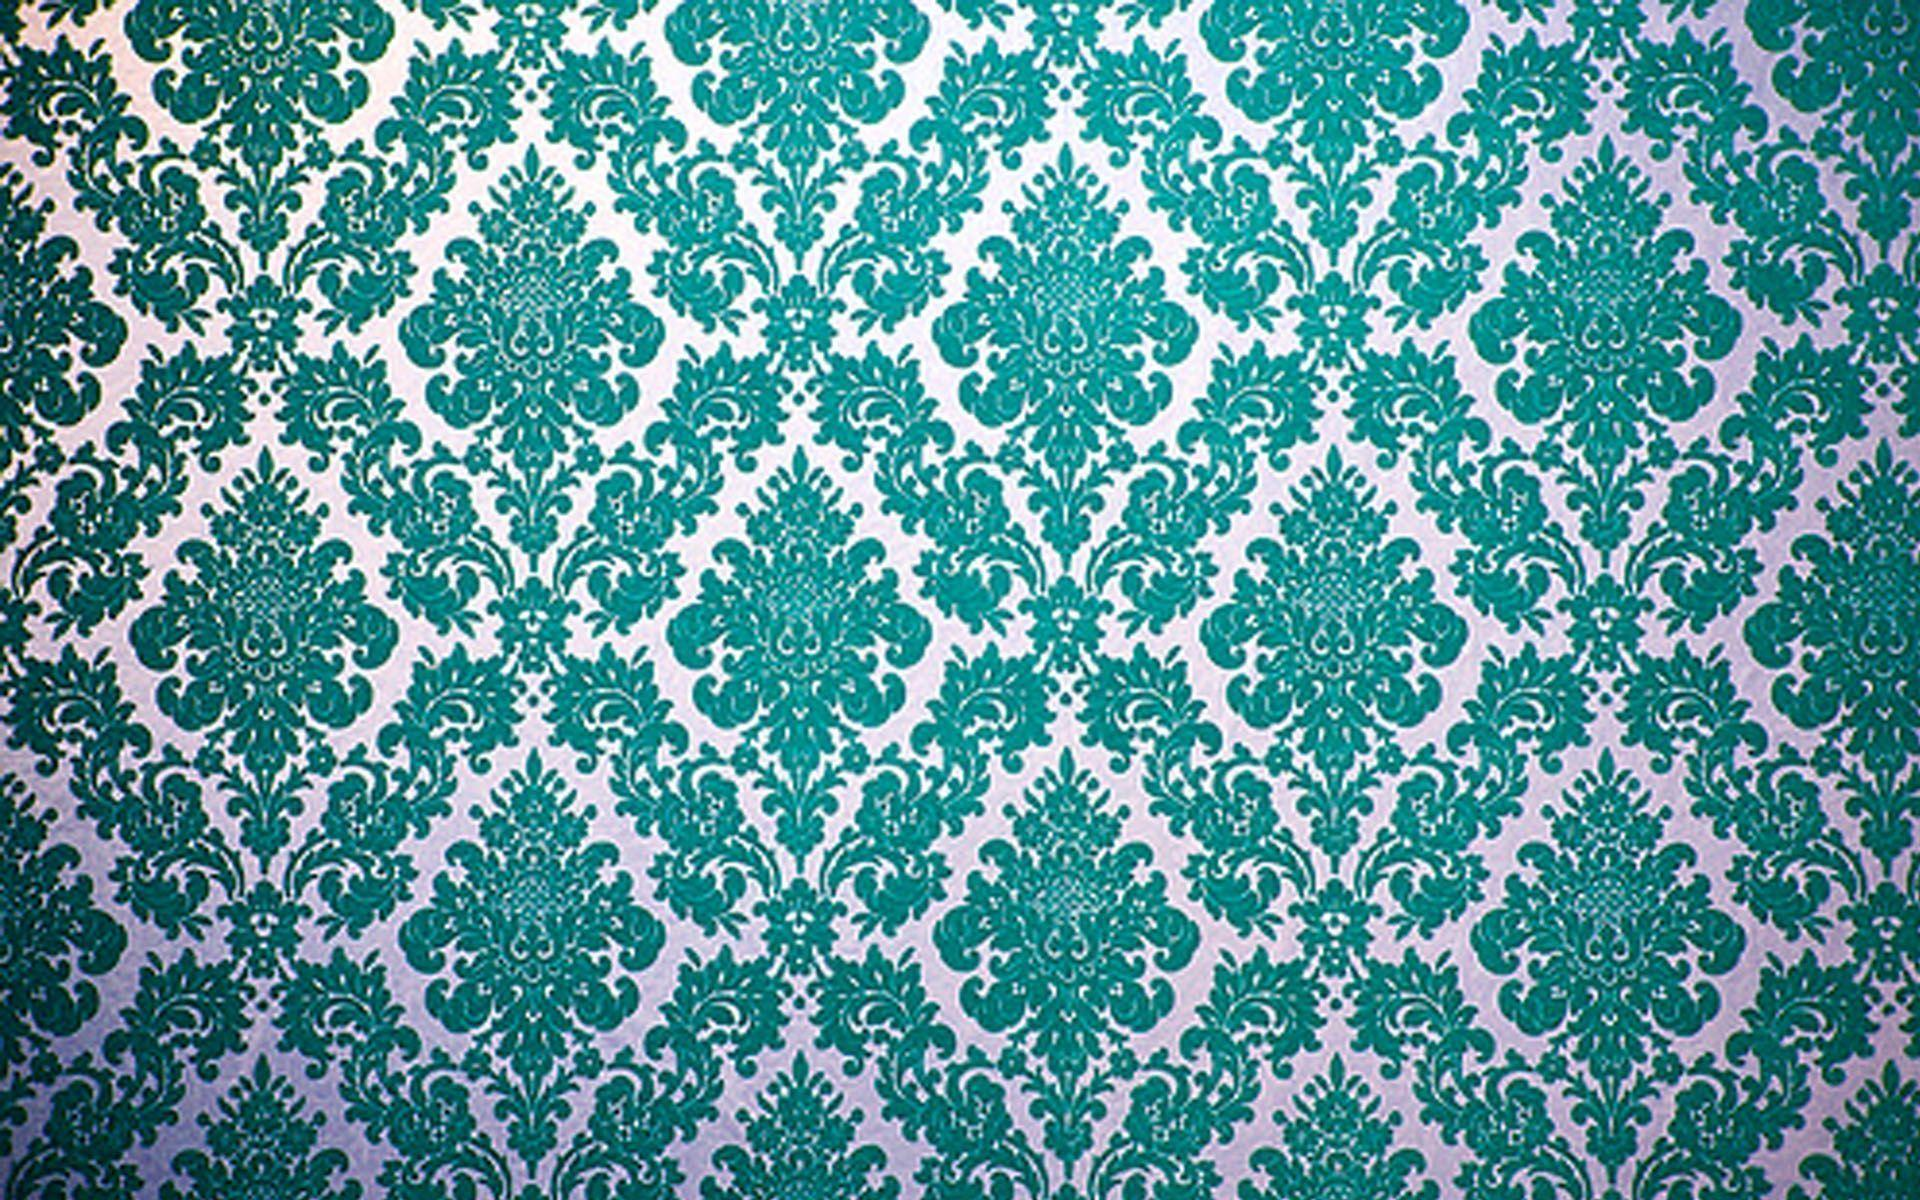 Damask Desktop Wallpapers Wallpaper Cave HD Wallpapers Download Free Images Wallpaper [1000image.com]